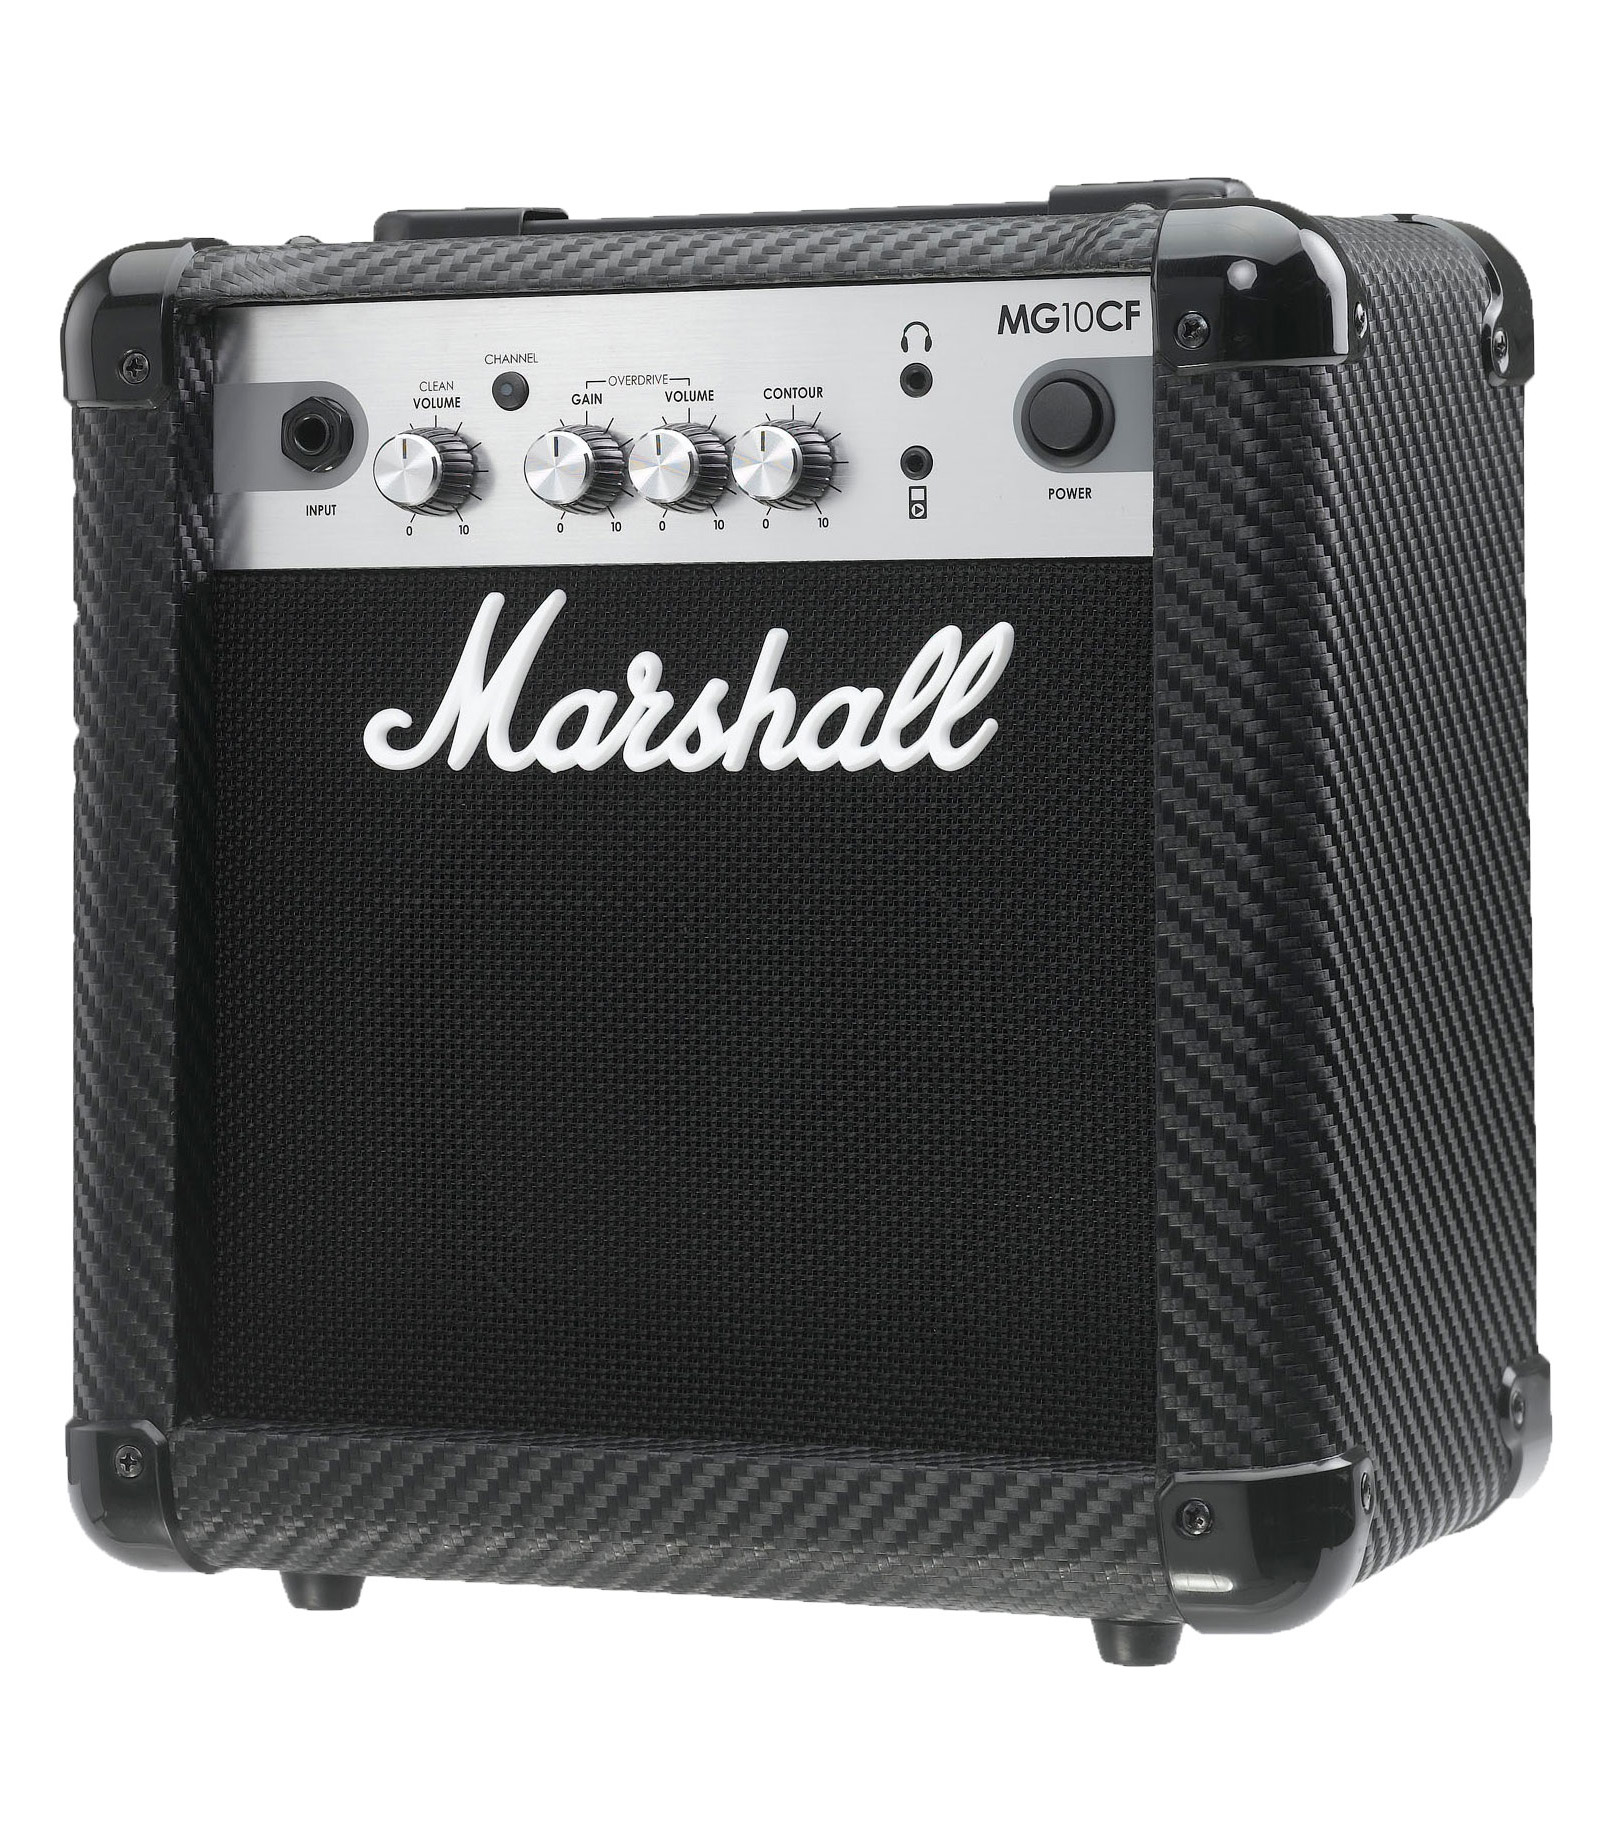 marshall - MG10CF Solid state Guitar Amp 2 Channe - Melody House